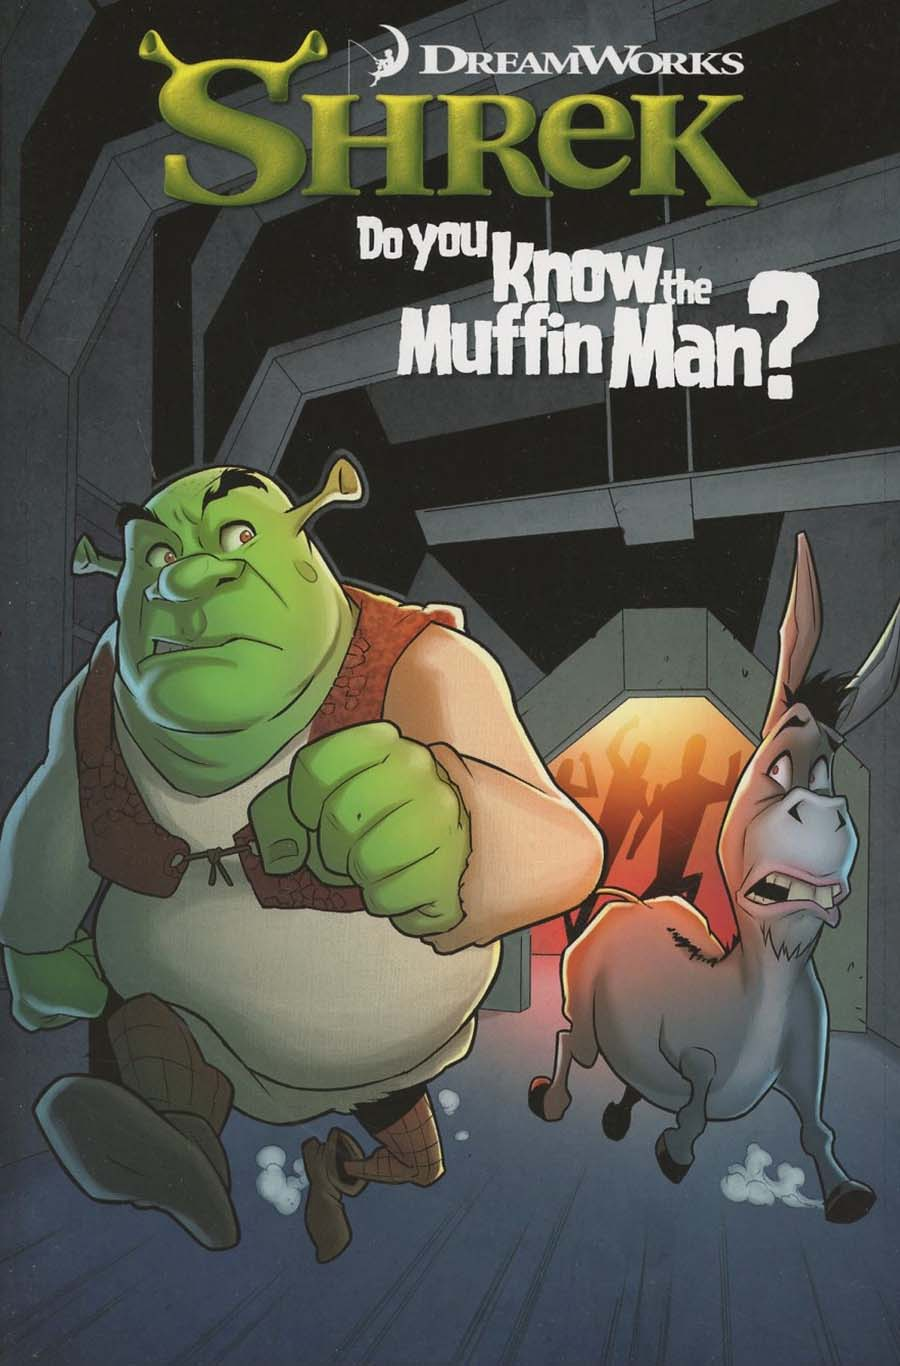 Dreamworks Shrek Do You Know The Muffin Man TP